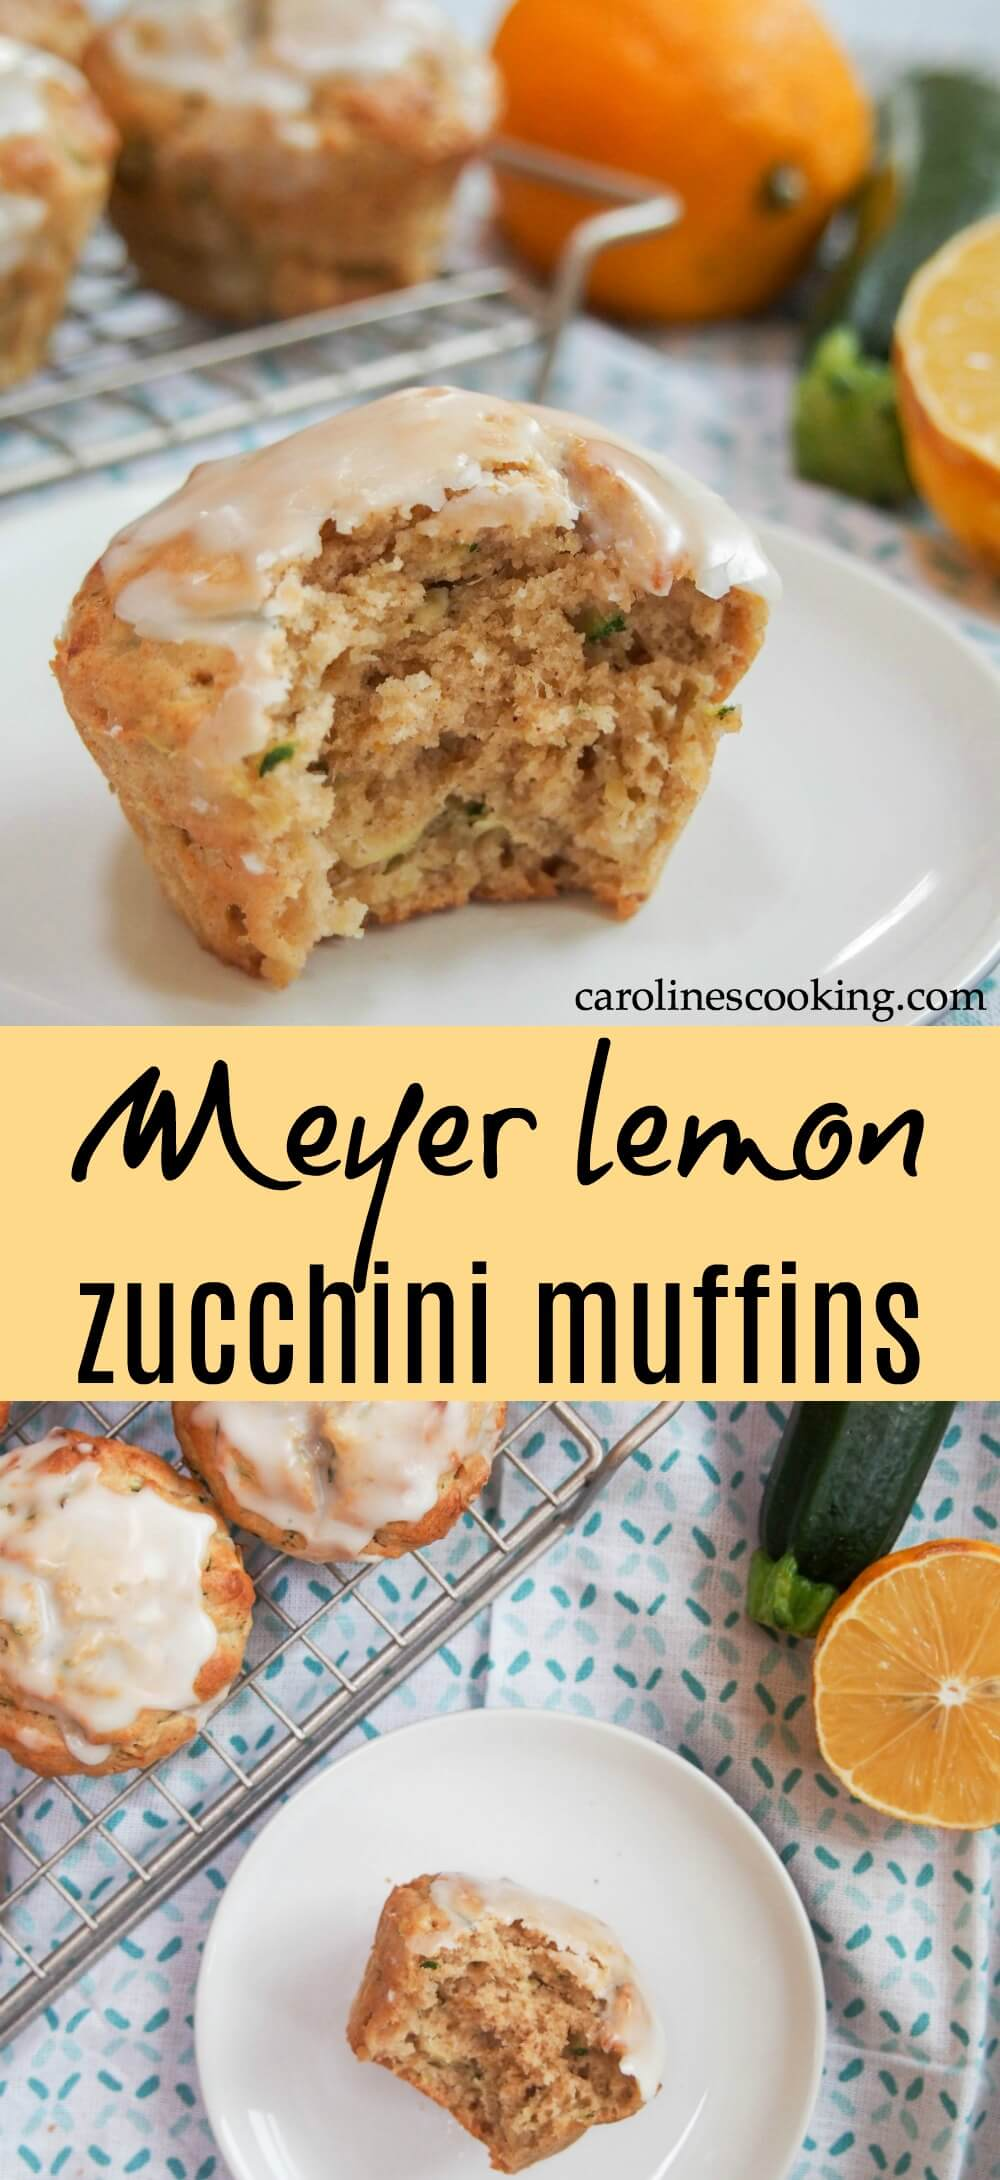 These Meyer lemon zucchini muffins are a bright citrusy taste of spring. Easy to make, relatively healthy and addictively good. You can also make them with lemon - either way enjoy the tender muffin and don't skip the citrus glaze! #meyerlemon #muffin #zucchini #springbaking #baking #healthybaking